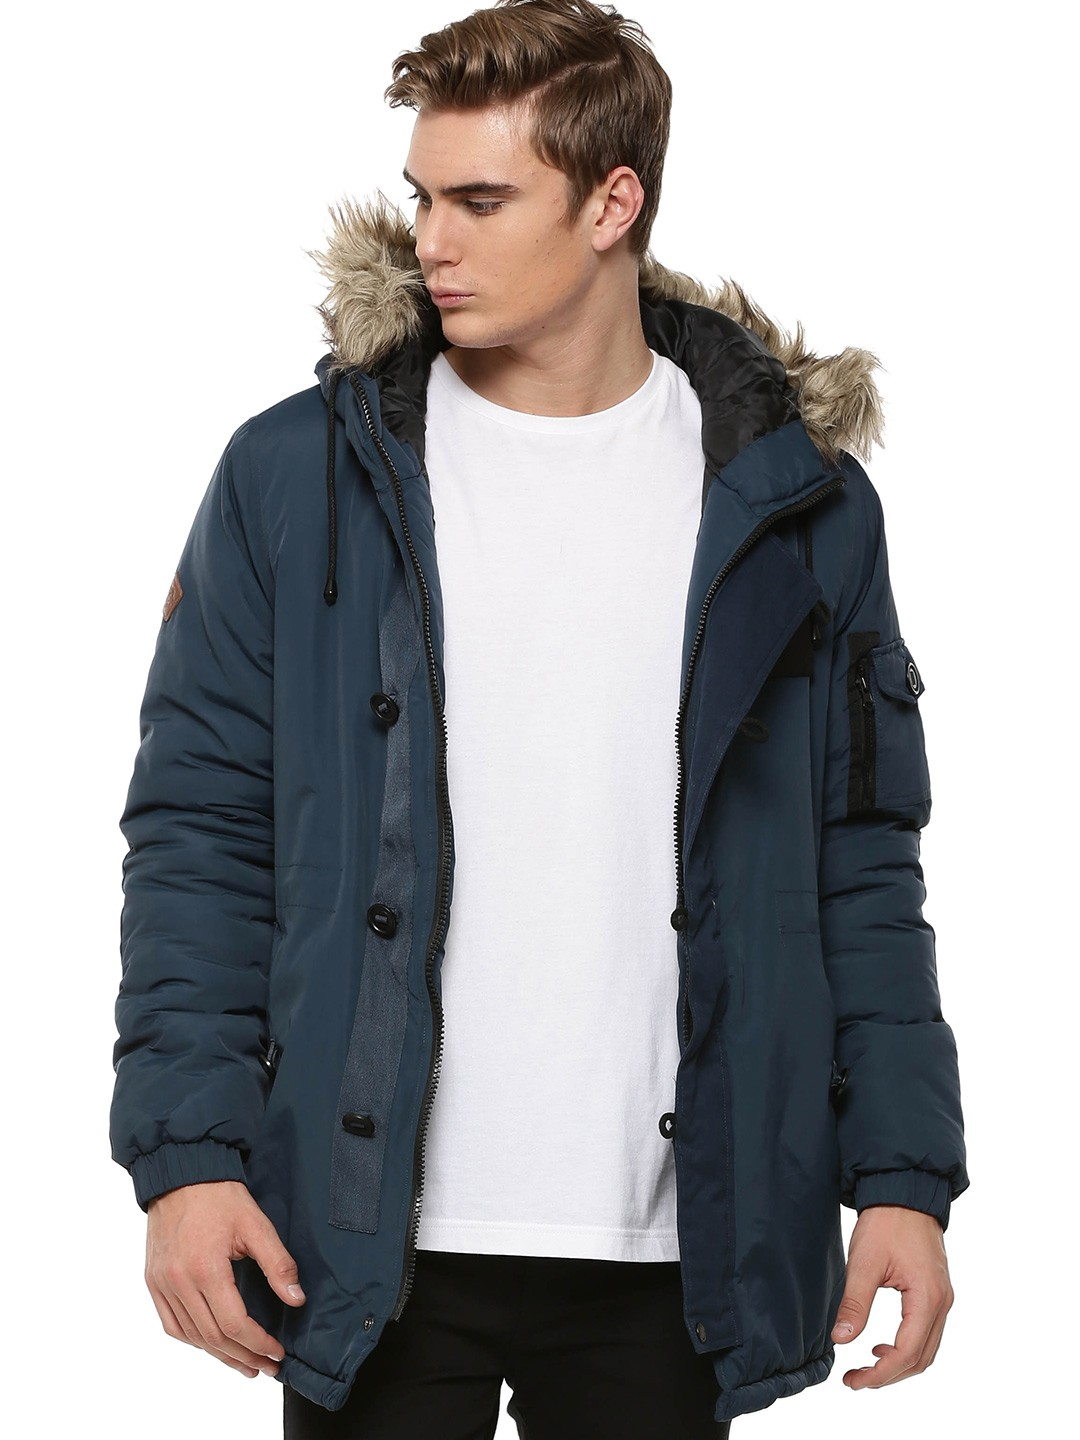 Buy online jackets and coats